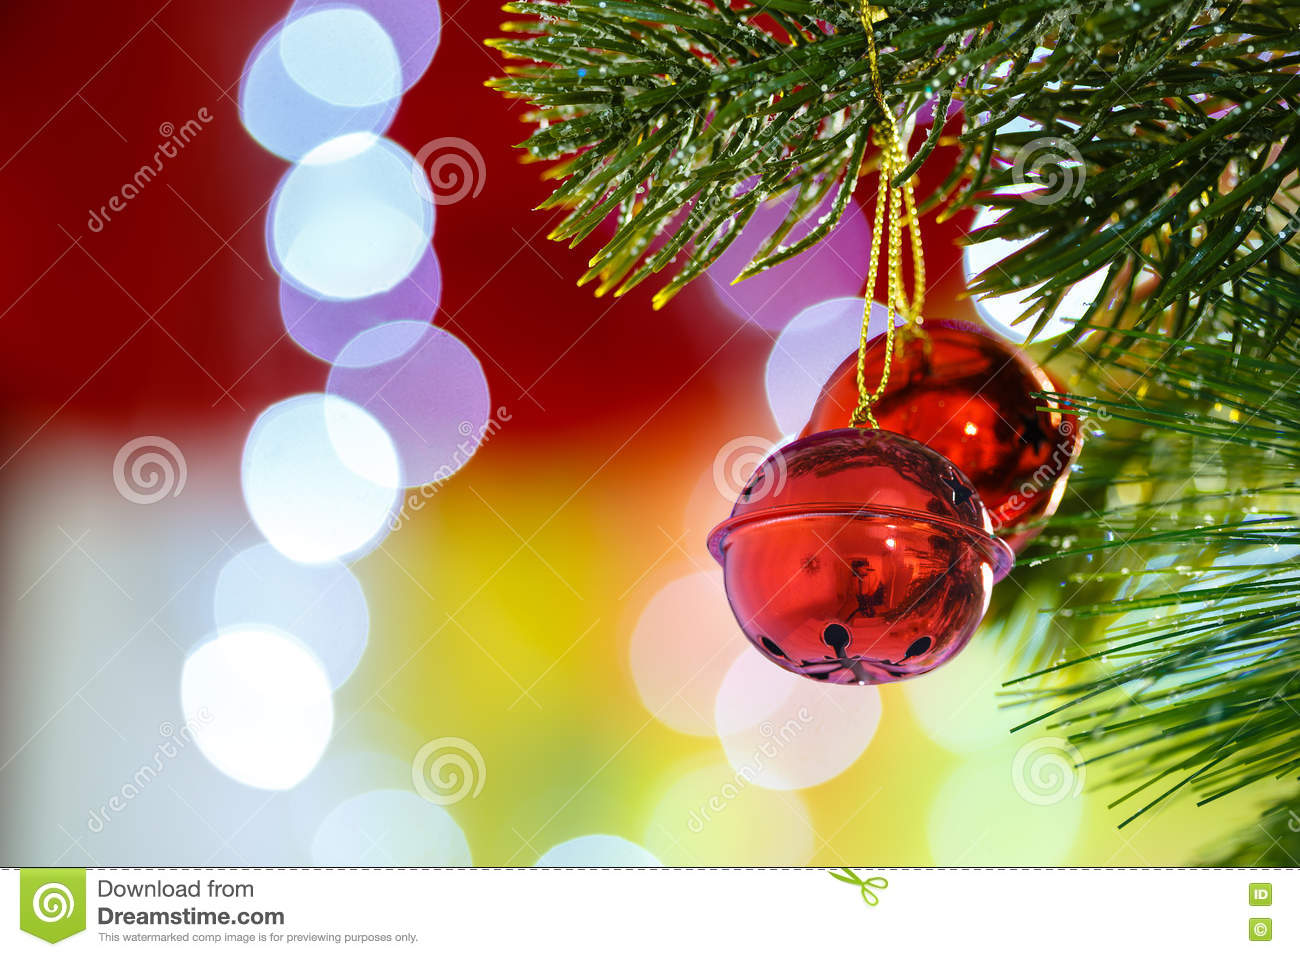 jingle bells on christmas tree with abstract light background